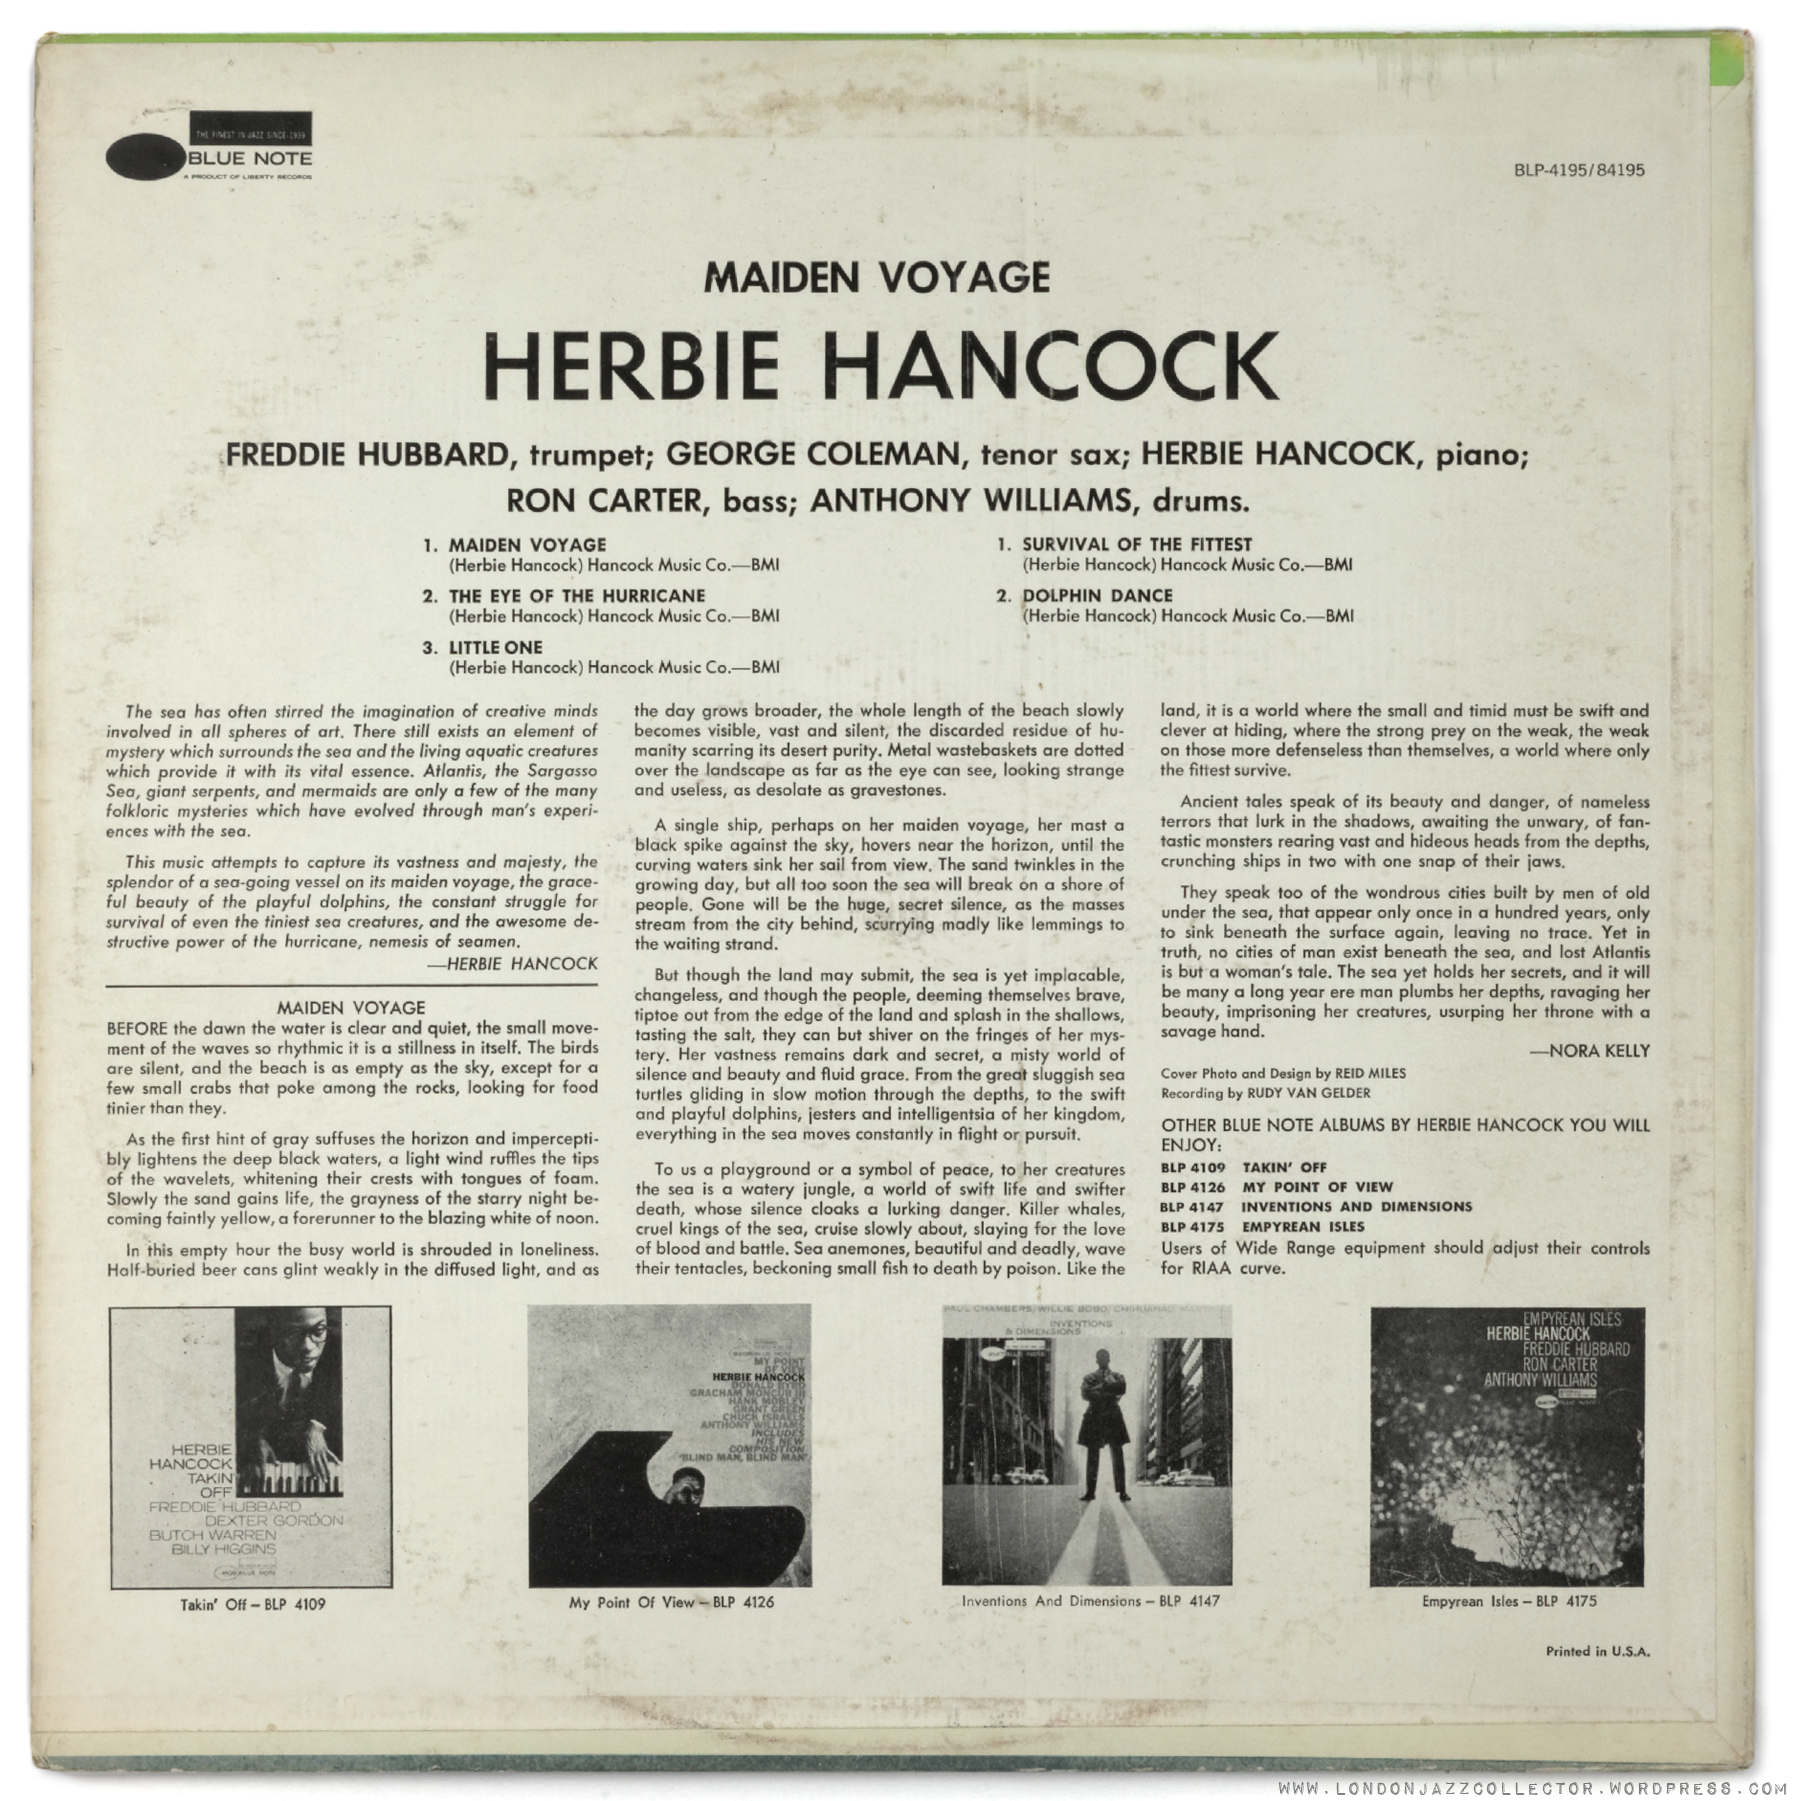 herbie hancocks maiden voyage Find album credit information for maiden voyage - herbie hancock on allmusic.